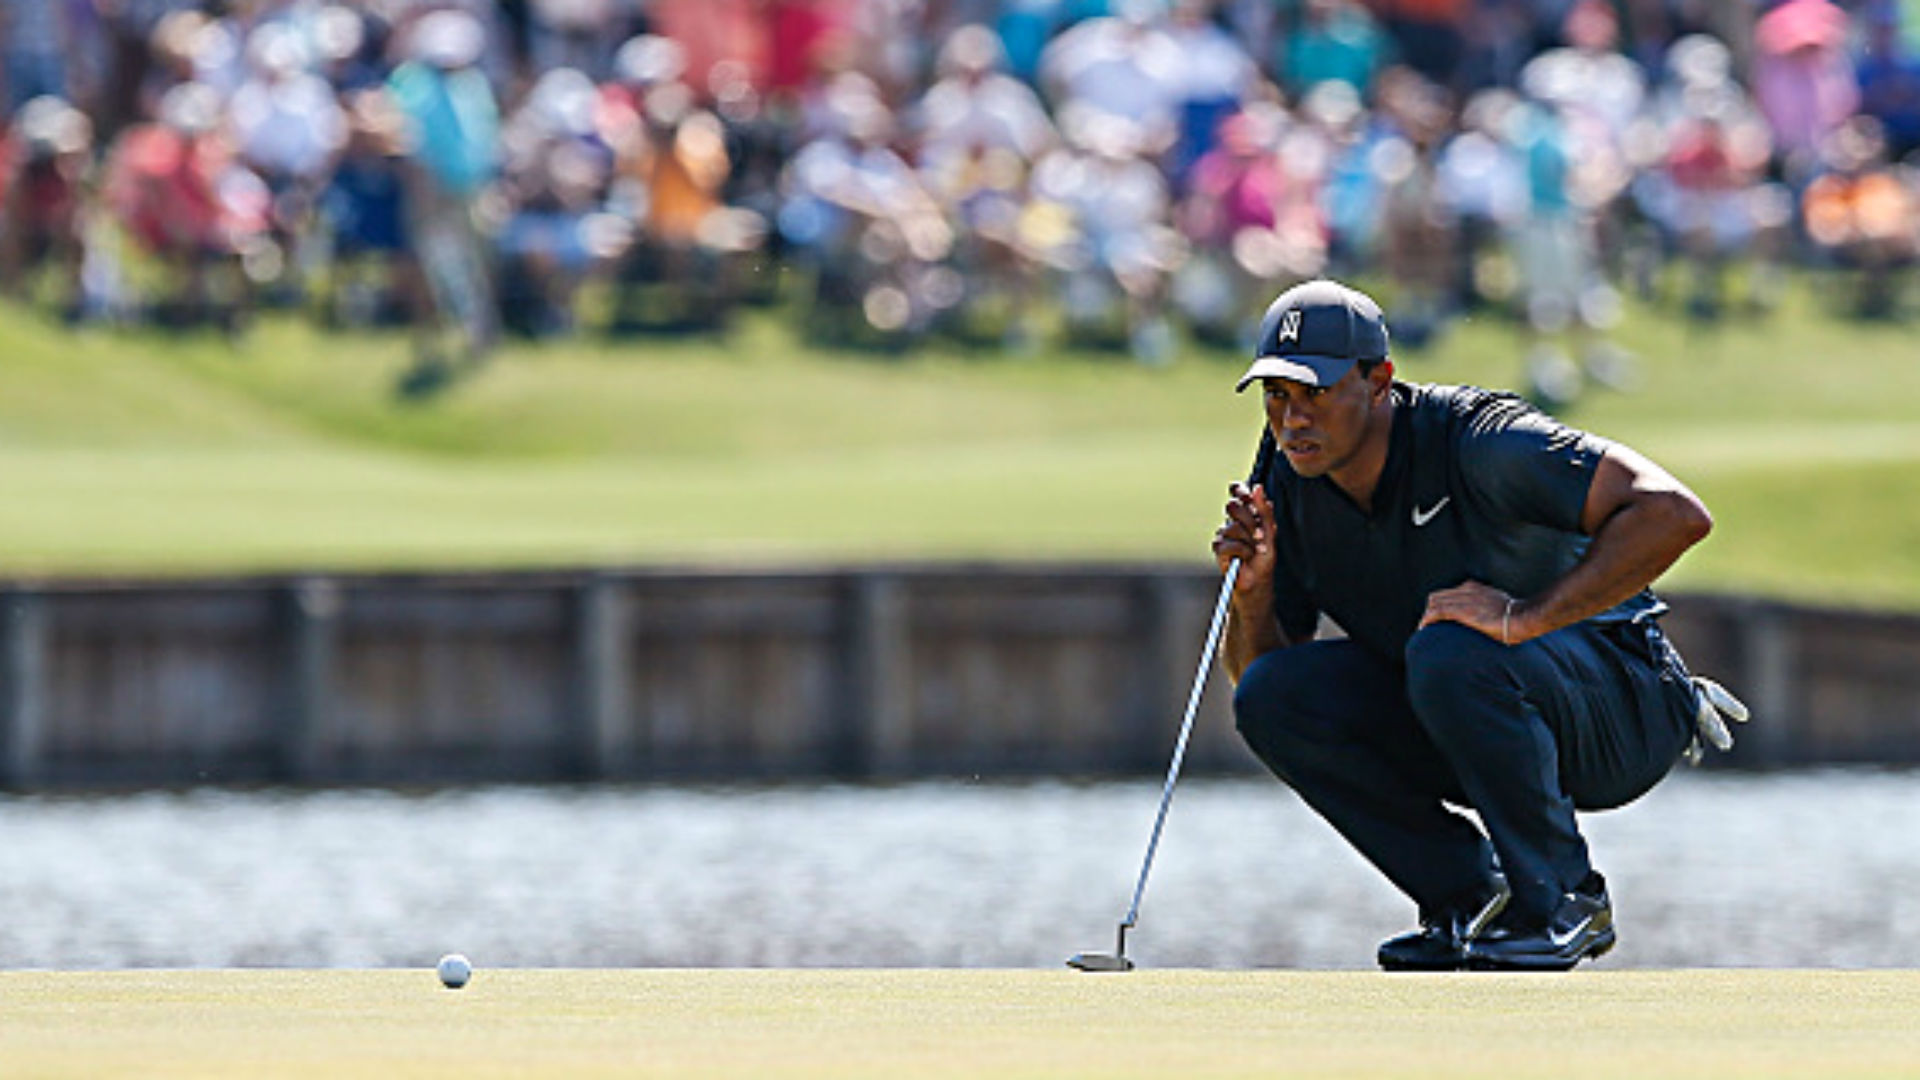 The Players Championship 2018: Tiger Woods charges up third-round leaderboard with 65